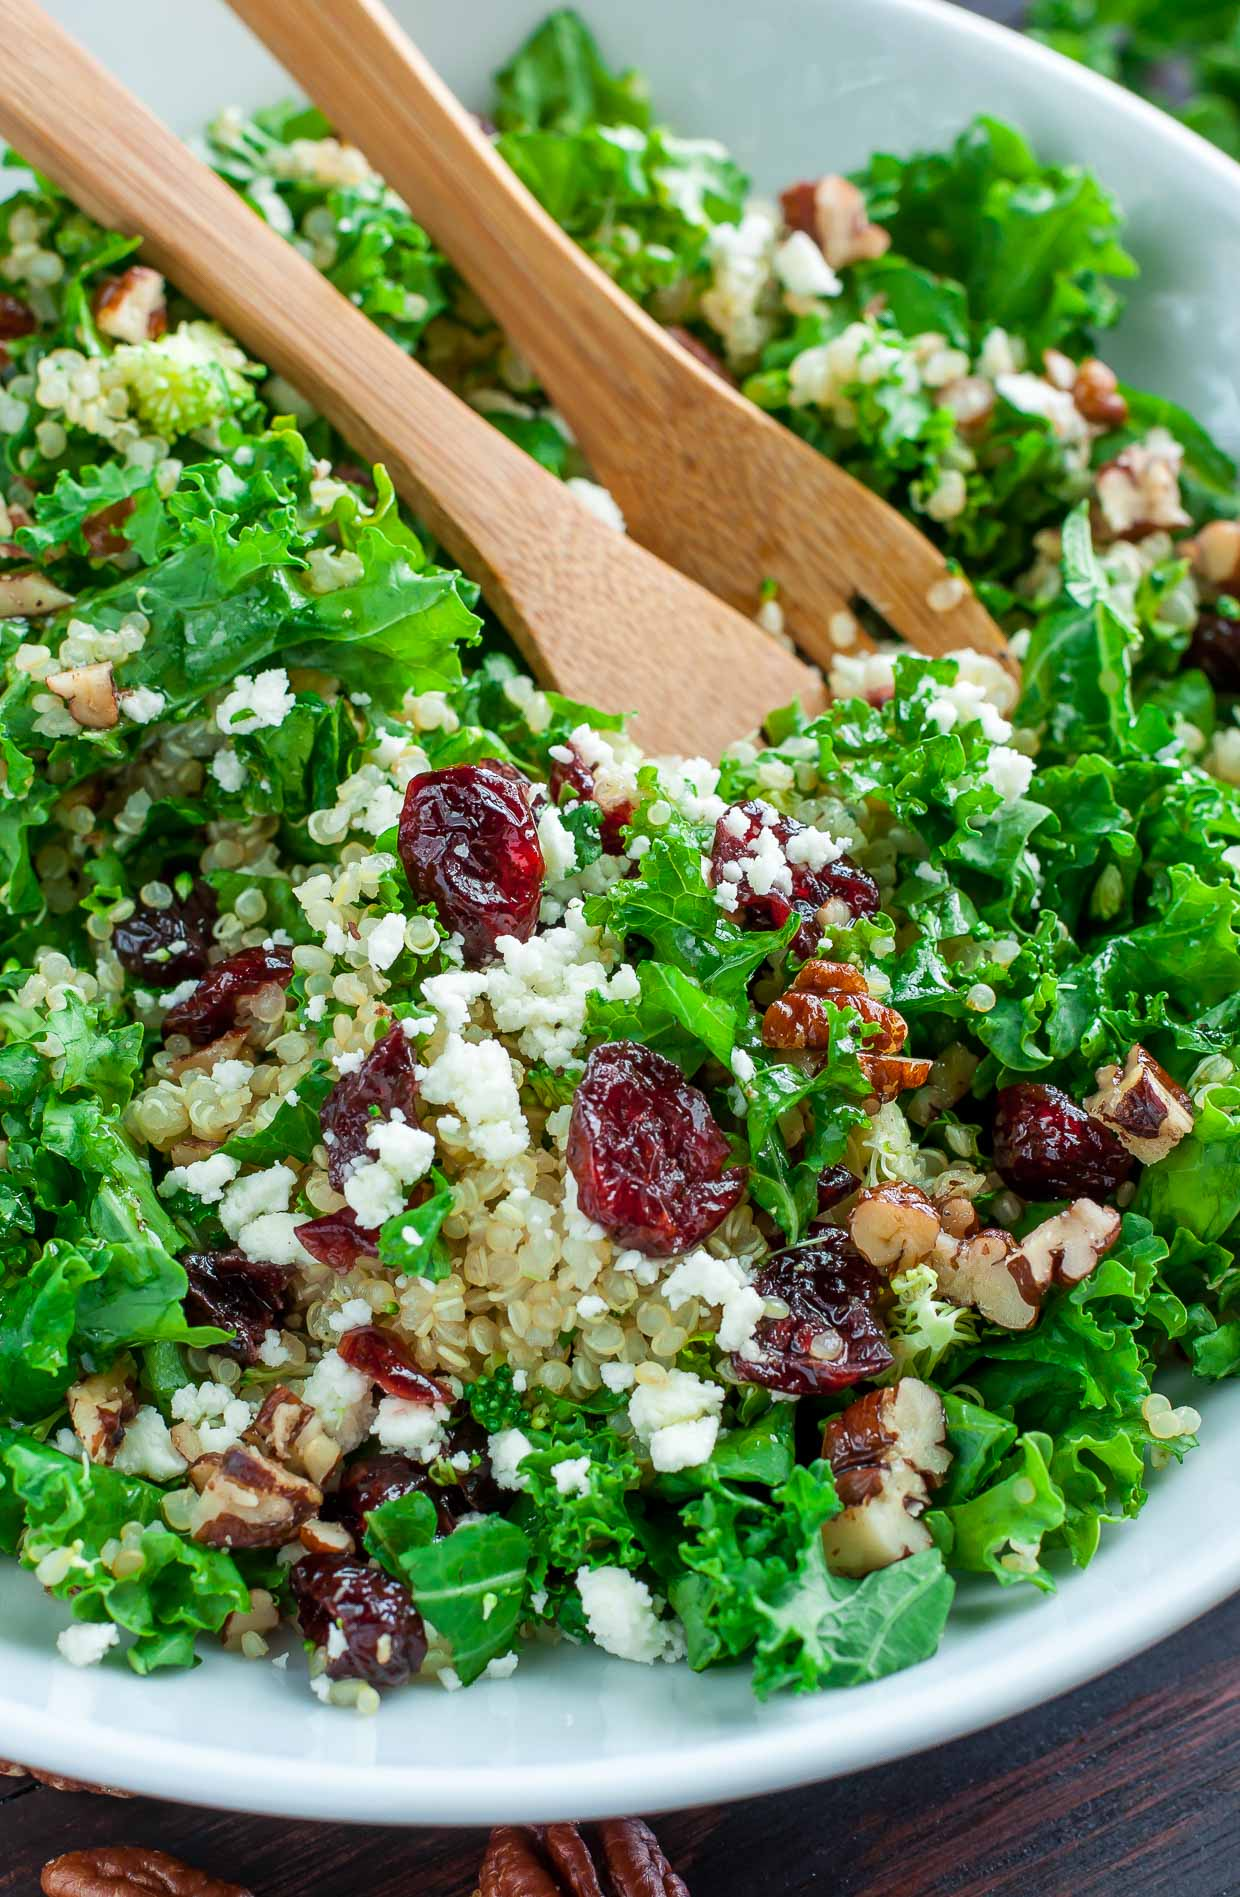 This Cranberry Kale Quinoa Salad with Candied Pecans and Feta is the perfect Fall salad! Tender kale, tart cranberries, creamy feta, and nutty quinoa are tossed in a super simple vinaigrette and topped with buttery homemade candied pecans.